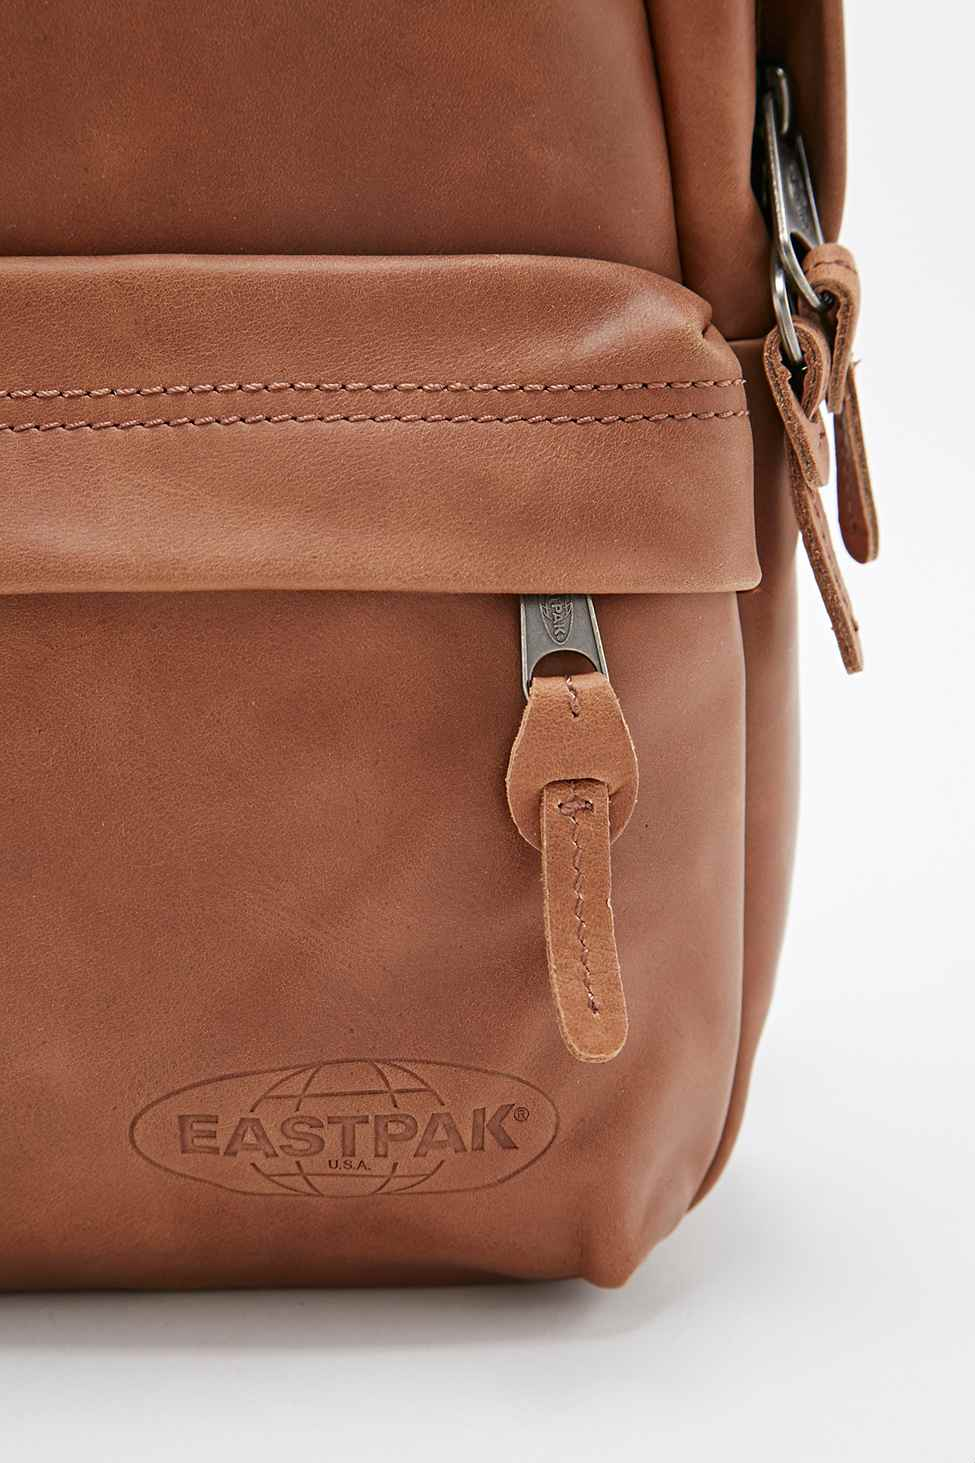 Eastpak Frick Leather Backpack In Tan in Brown | Lyst